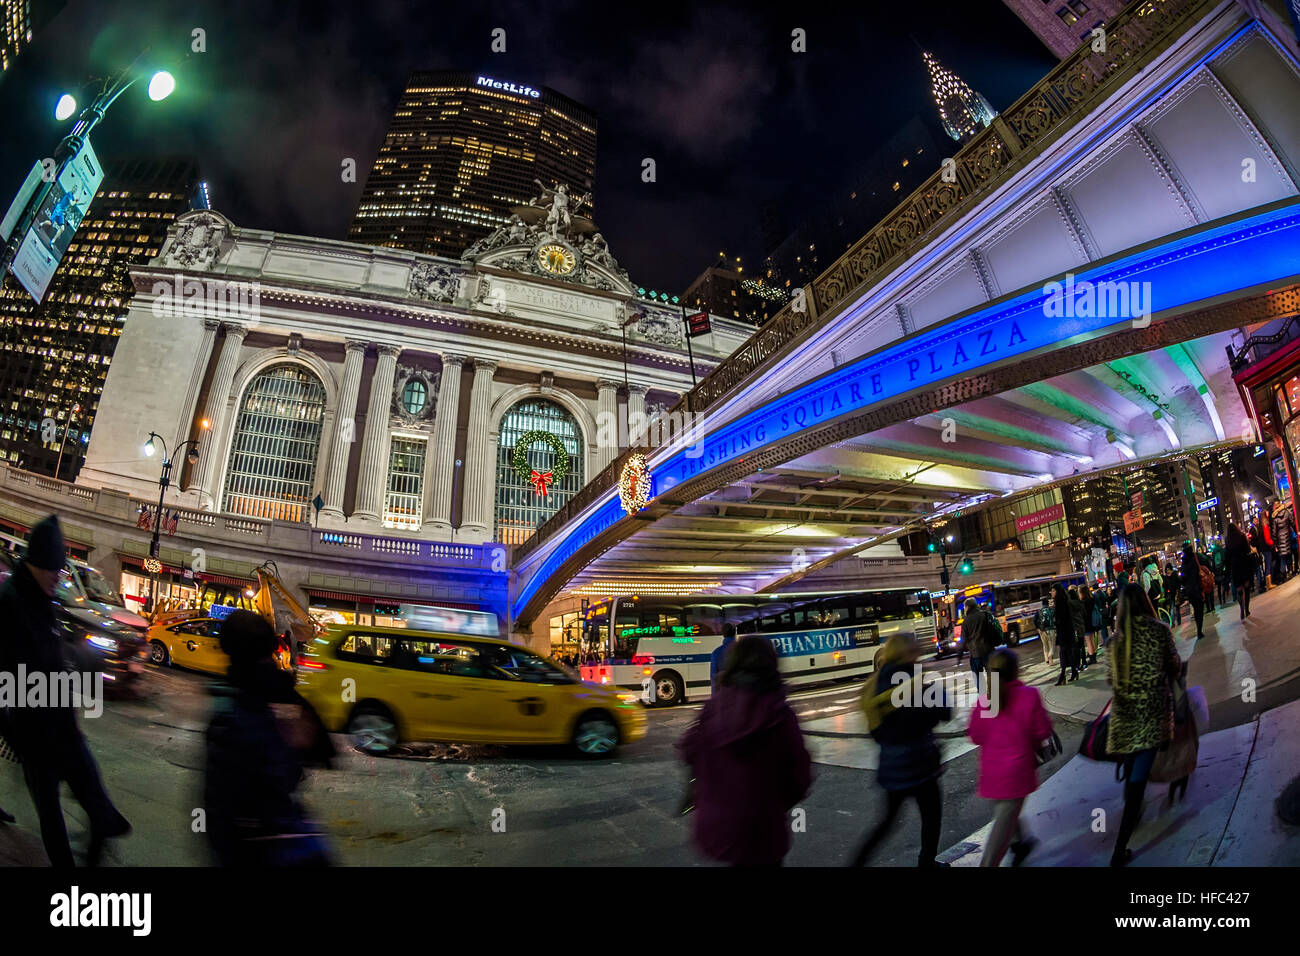 New York City, USA 29 December 2016 - The Park Avenue Viaduct bathe in Blue to celebrate Chanukkah, Grand Central - Stock Image